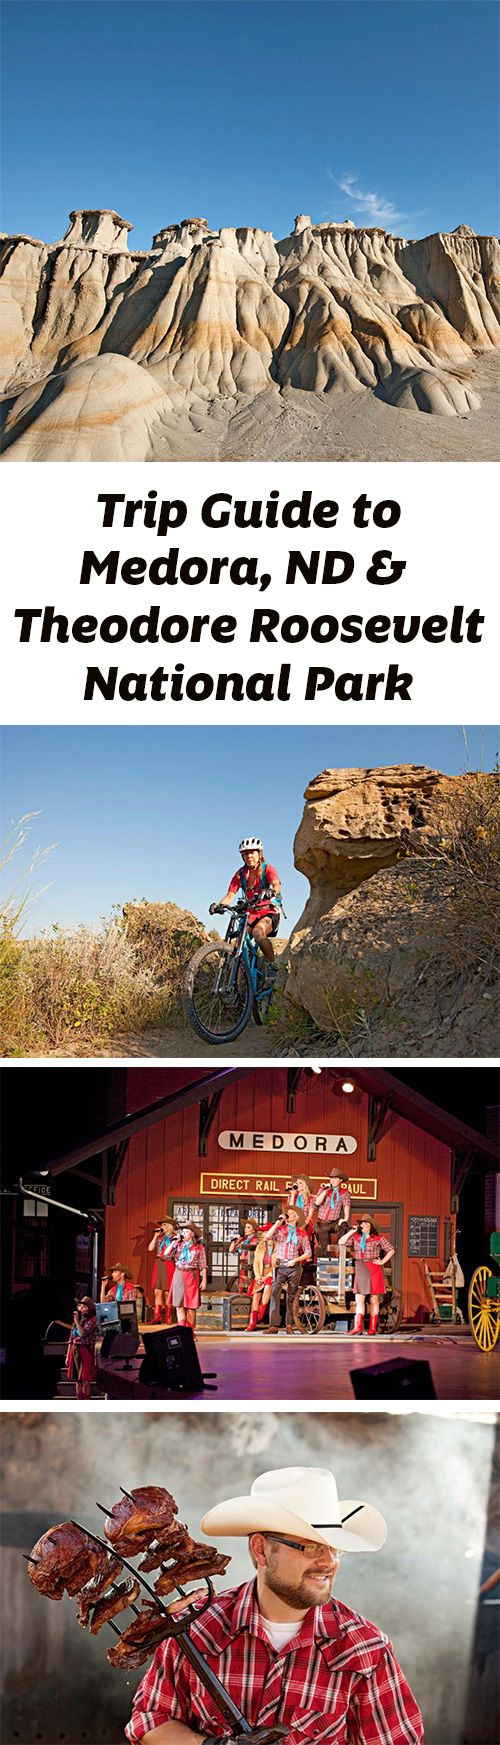 best ideas about theodore roosevelt national park medora makes a good base to explore the badlands of theodore roosevelt national park other